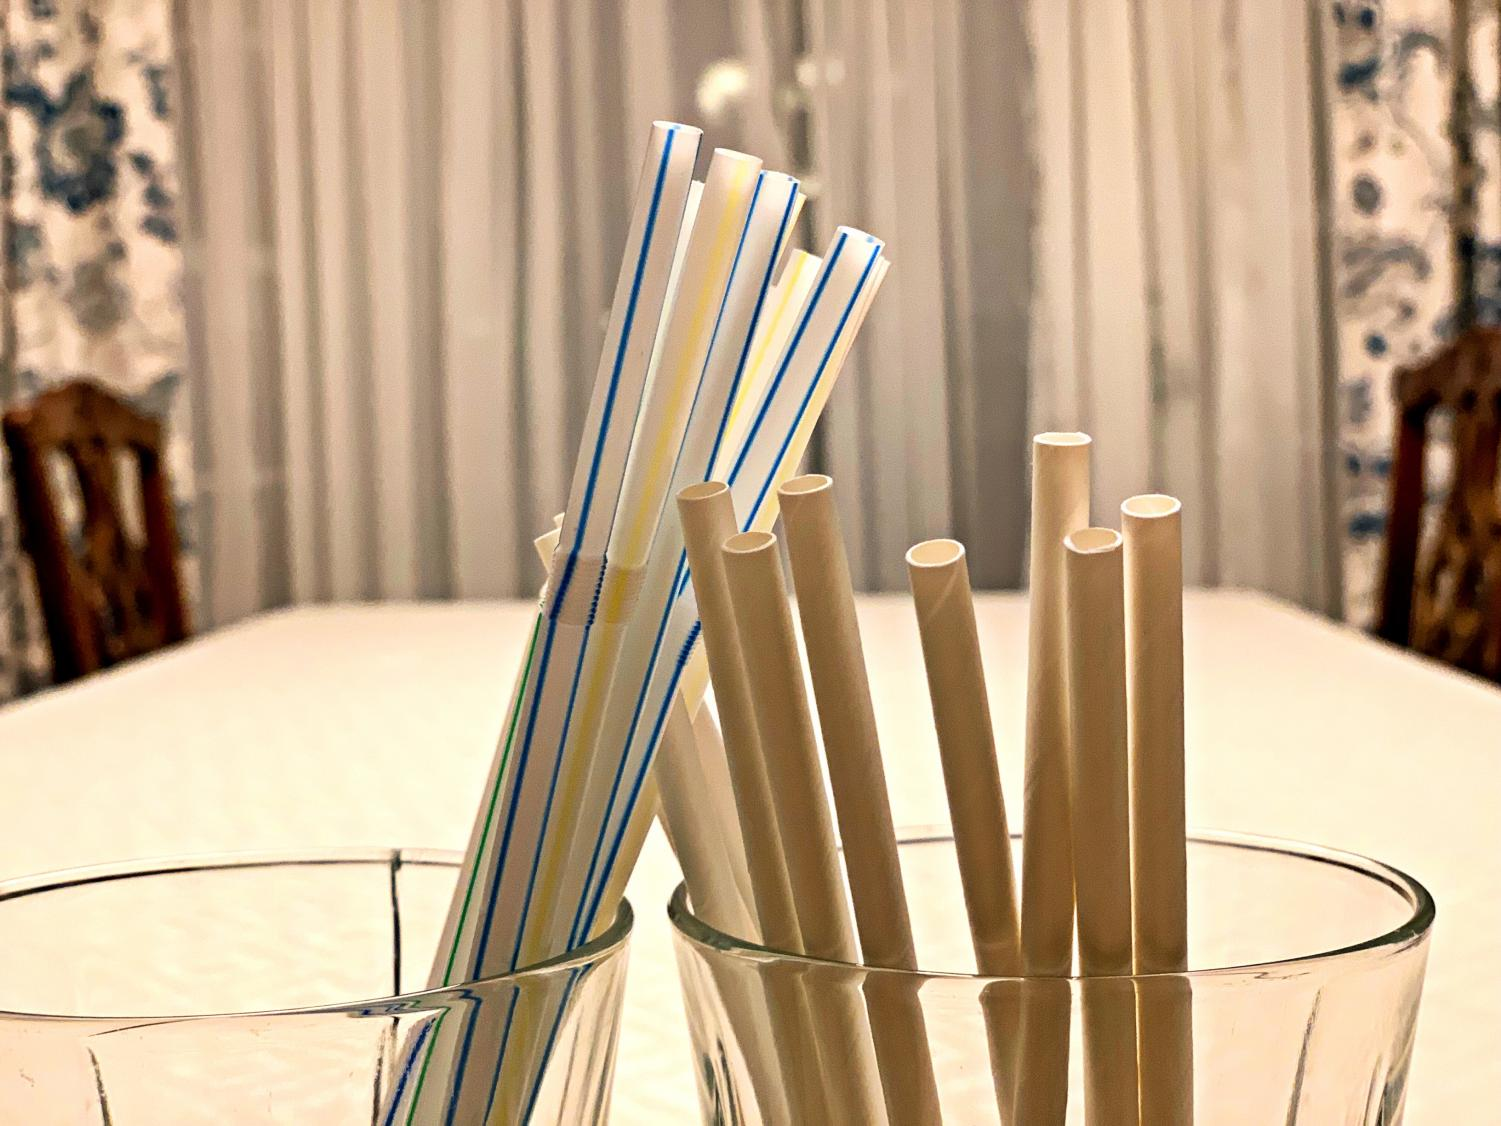 As more and more companies make the switch from plastic to paper straws, there's some controversy over the switch and whether it makes an impact on the environment.